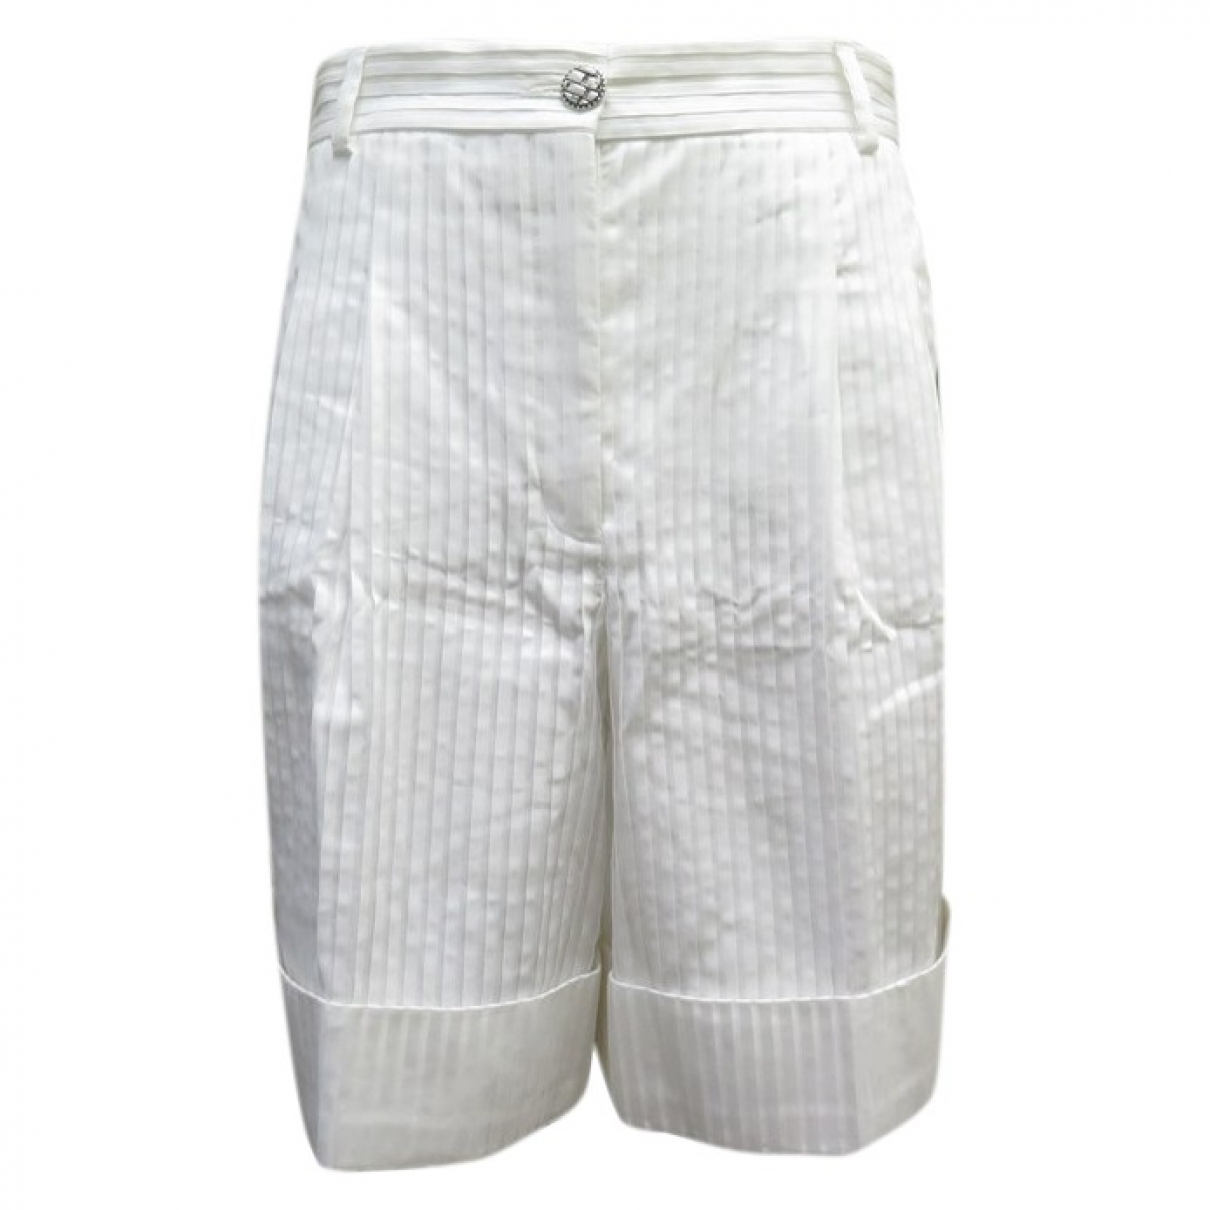 Chanel \N White Cotton Shorts for Women M International